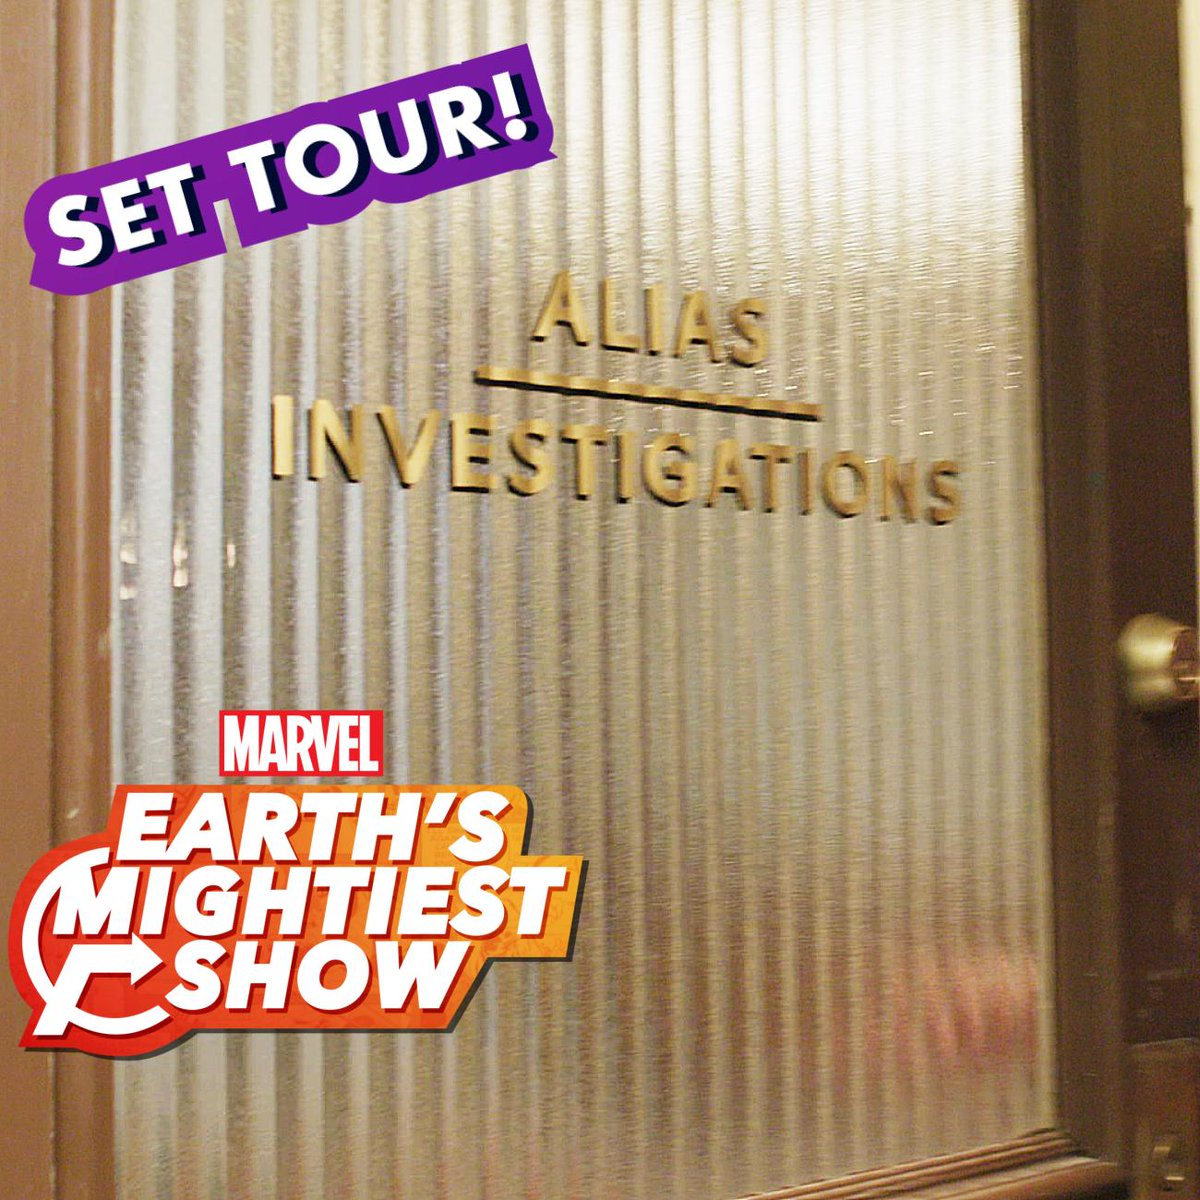 """.@LorraineCink takes us behind the scenes on a set tour of """"Marvel's #JessicaJones"""" Season 3, streaming now on Netflix! Watch: http://bit.ly/31xfccX #EarthsMightiestShow"""